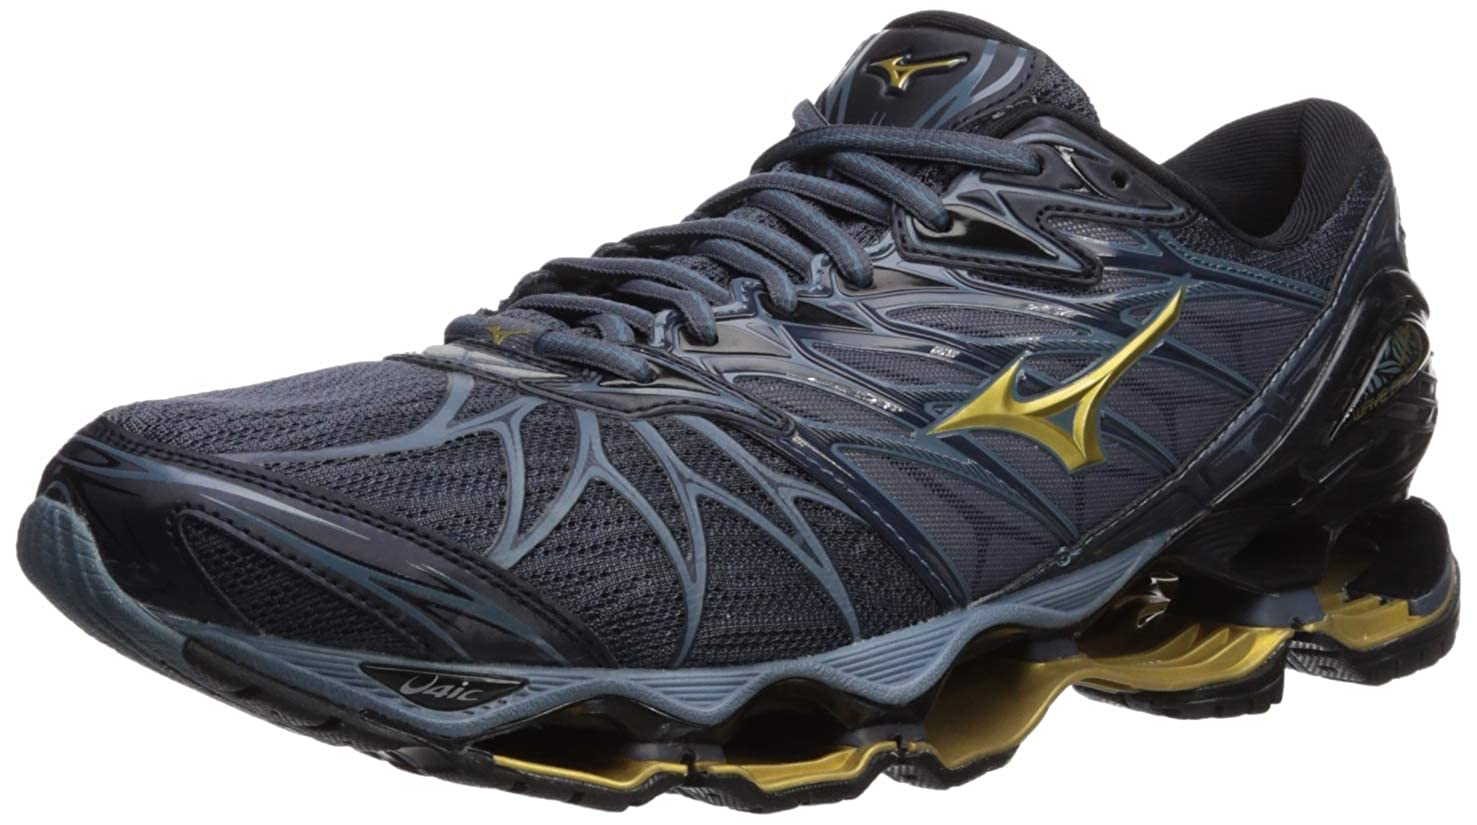 best mizuno running shoes mens amazon